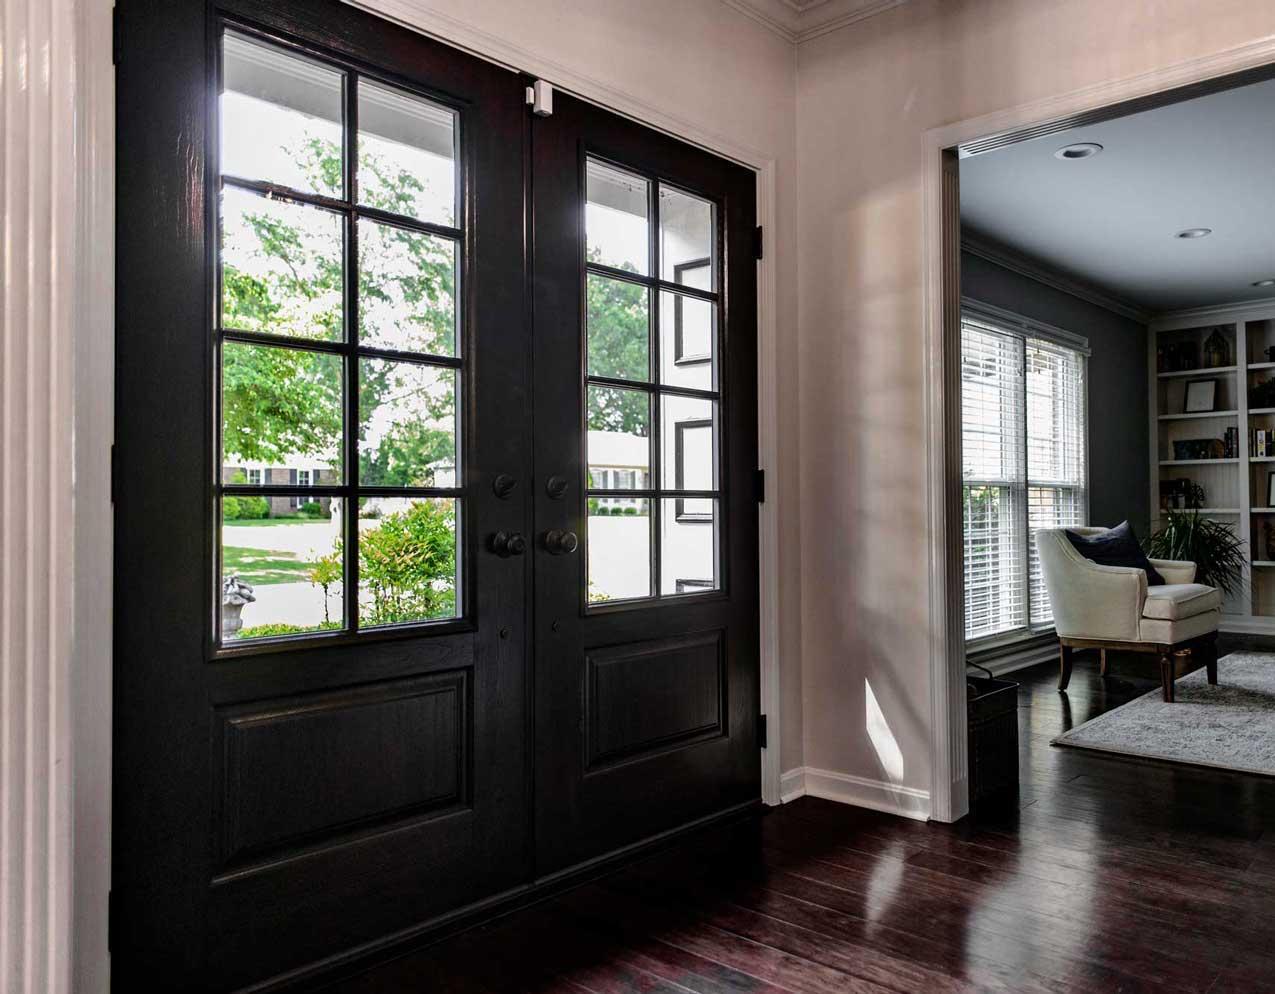 We work to ensure your home is left just the way we found it, but with a fabulous new door!